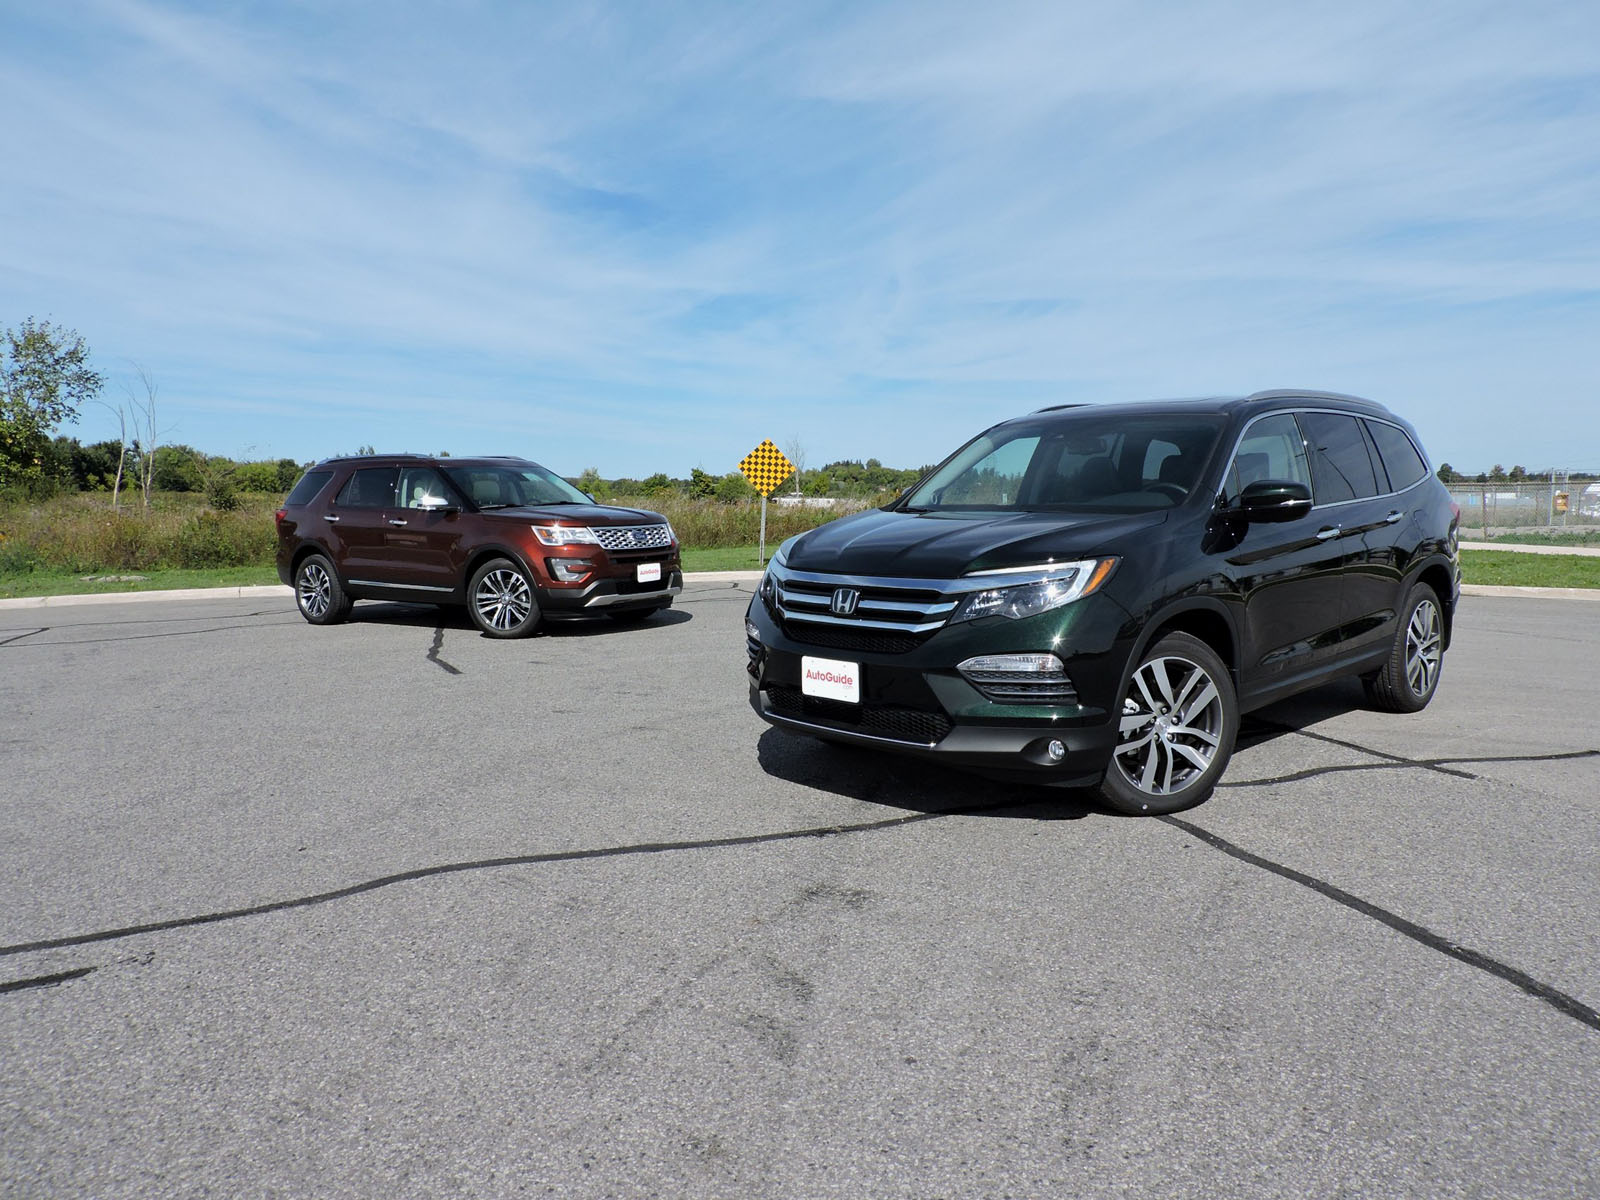 2016-Ford-Explorer-vs-2016-Honda-Pilot-03.JPG